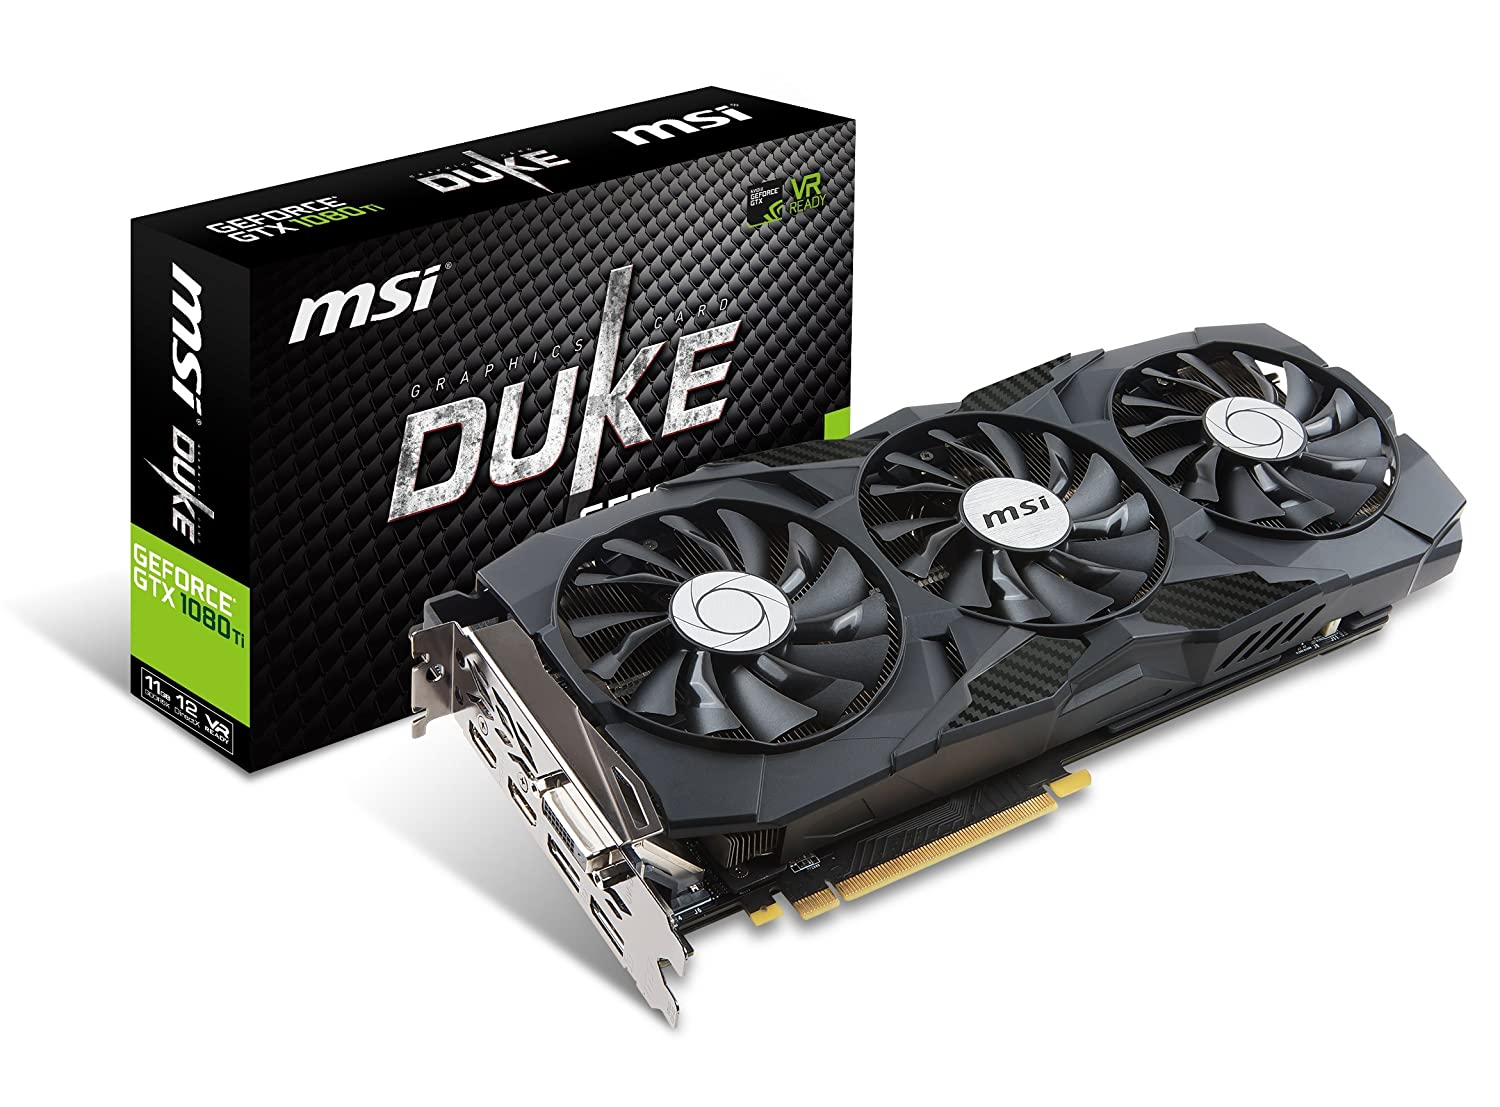 MSI Gaming GeForce GTX 1080 Ti 11GB GDRR5X DirectX 12 352-bit VR Ready Graphics Card (GTX 1080 TI Duke 11G OC)